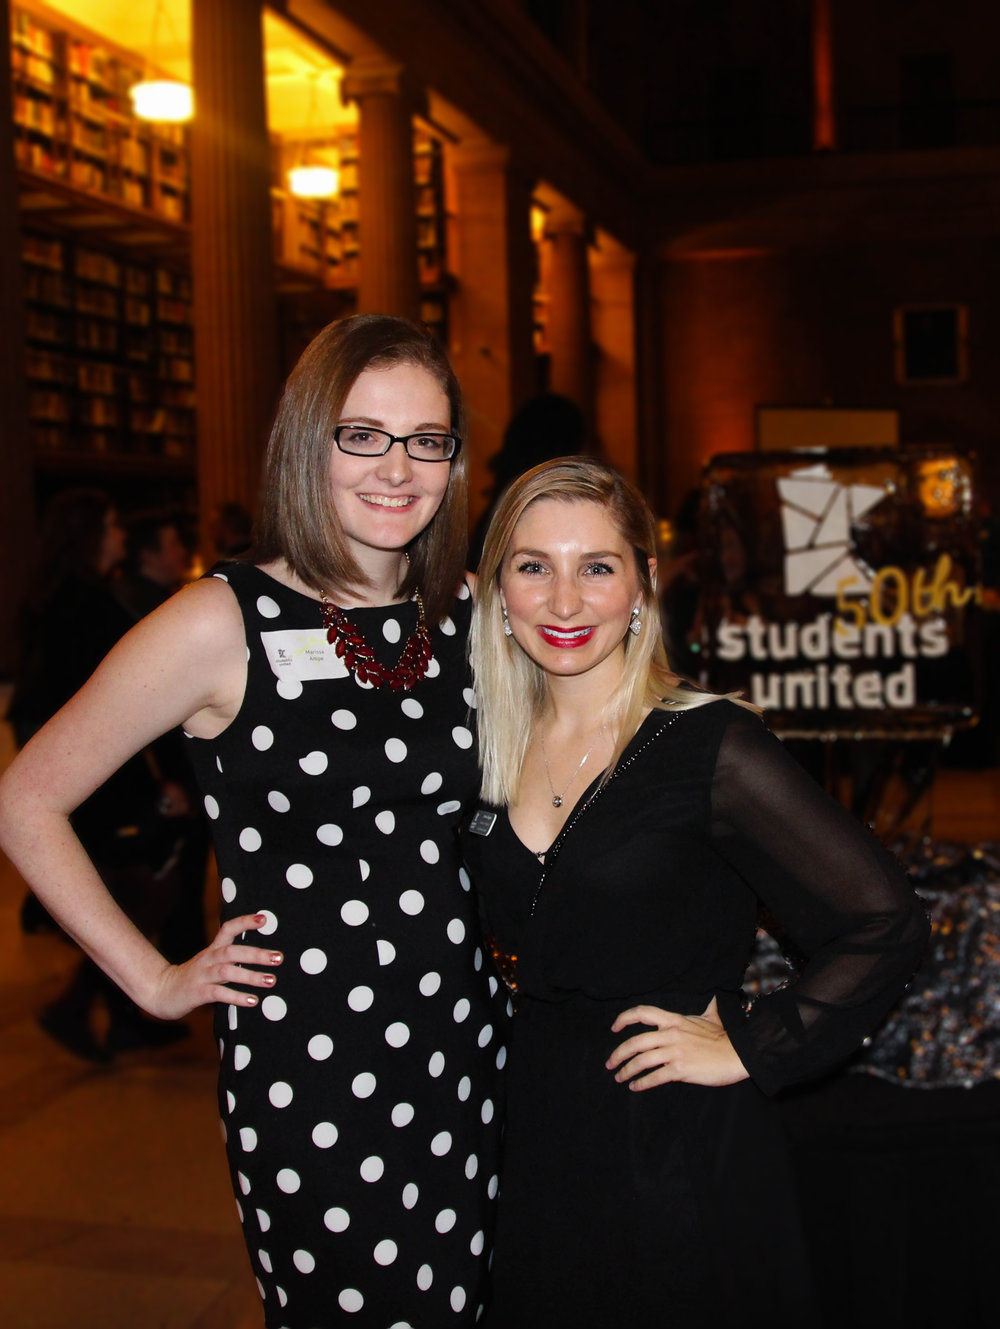 Carlee [right] & her former intern Marissa [left] at 50th Gala.